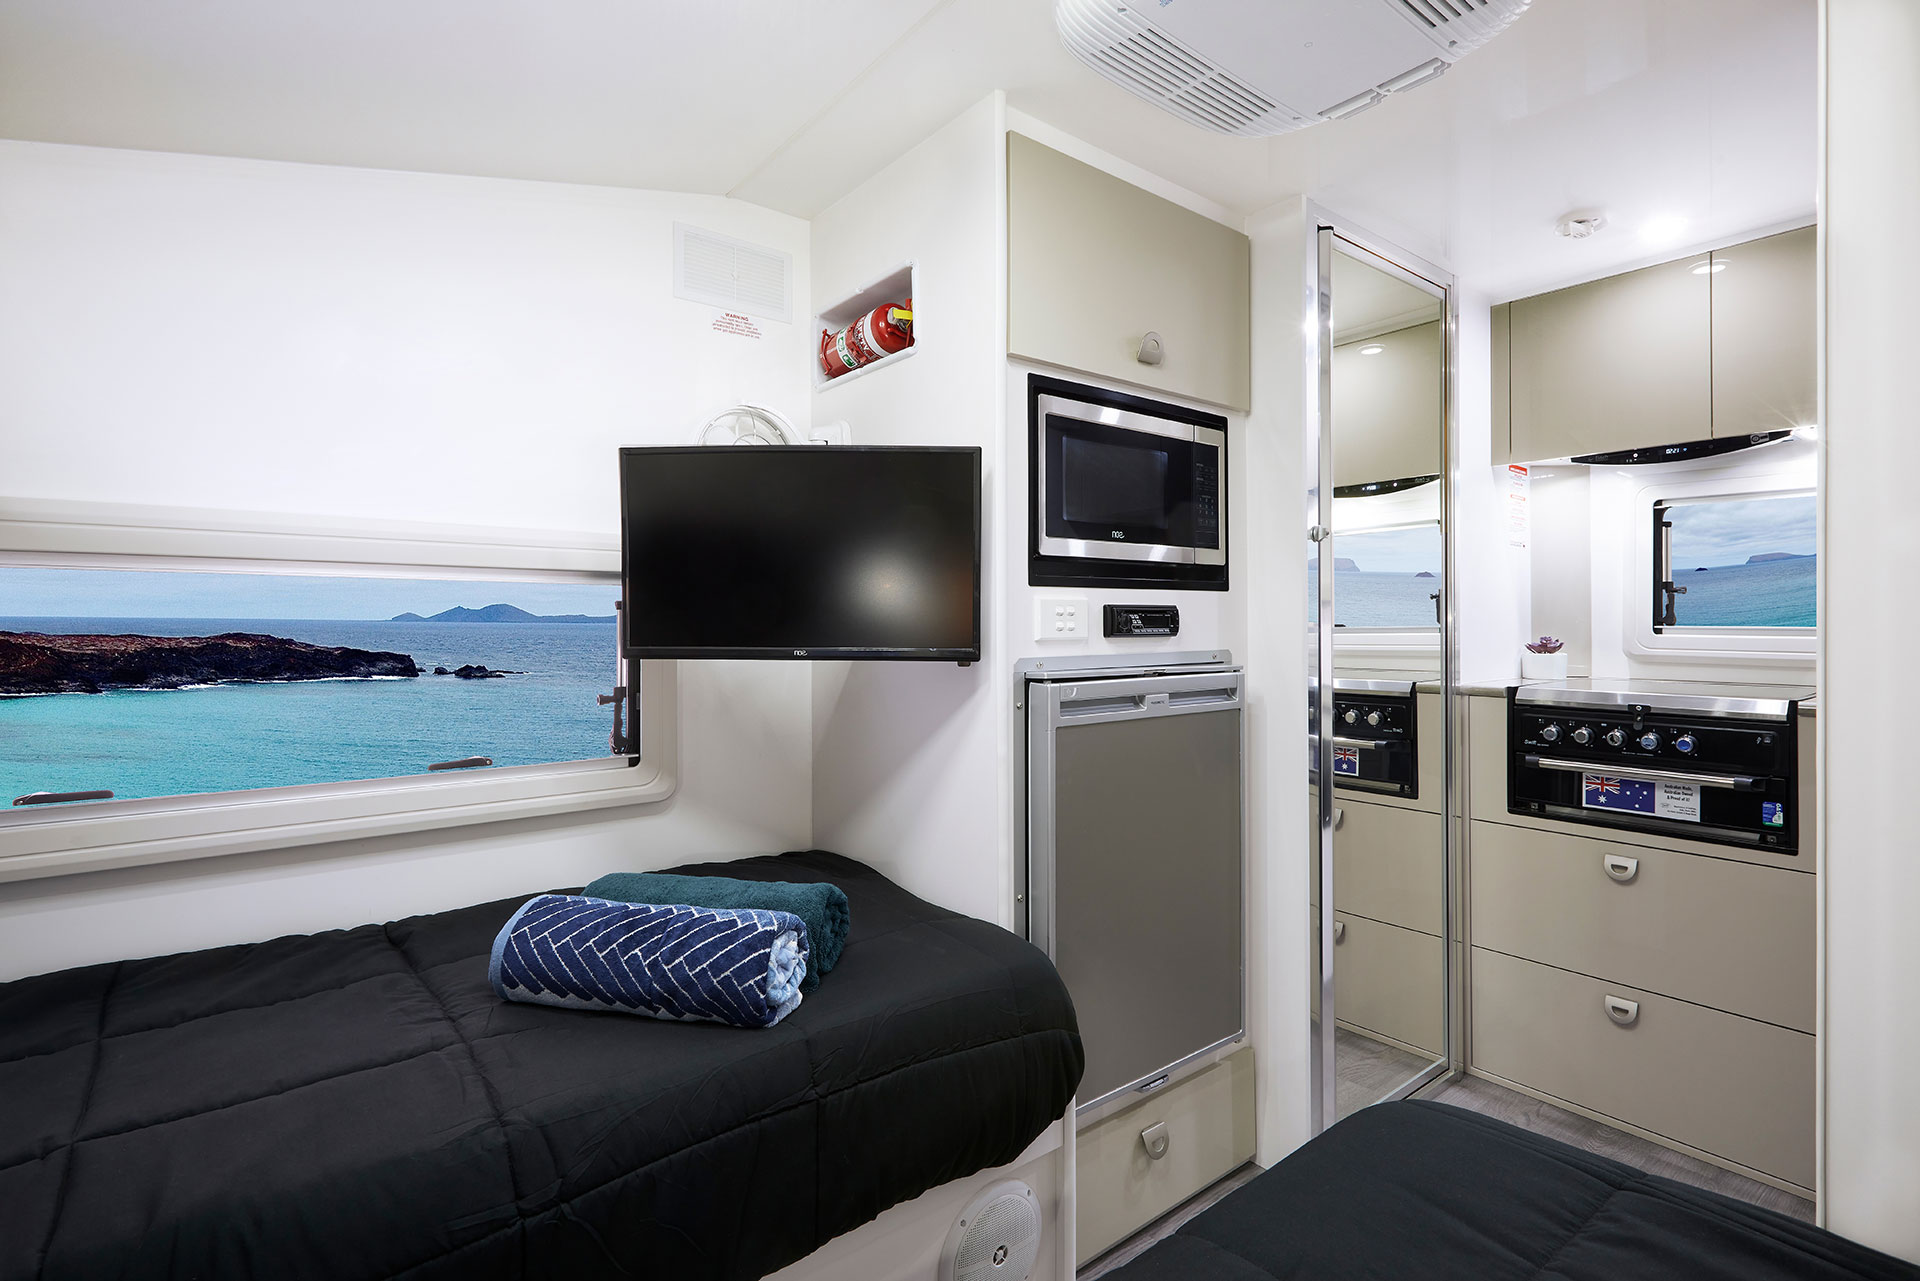 Everything you need for a comfortable trip away, including TV, Microwave, Fridge, Kitchen, and Ensuite.